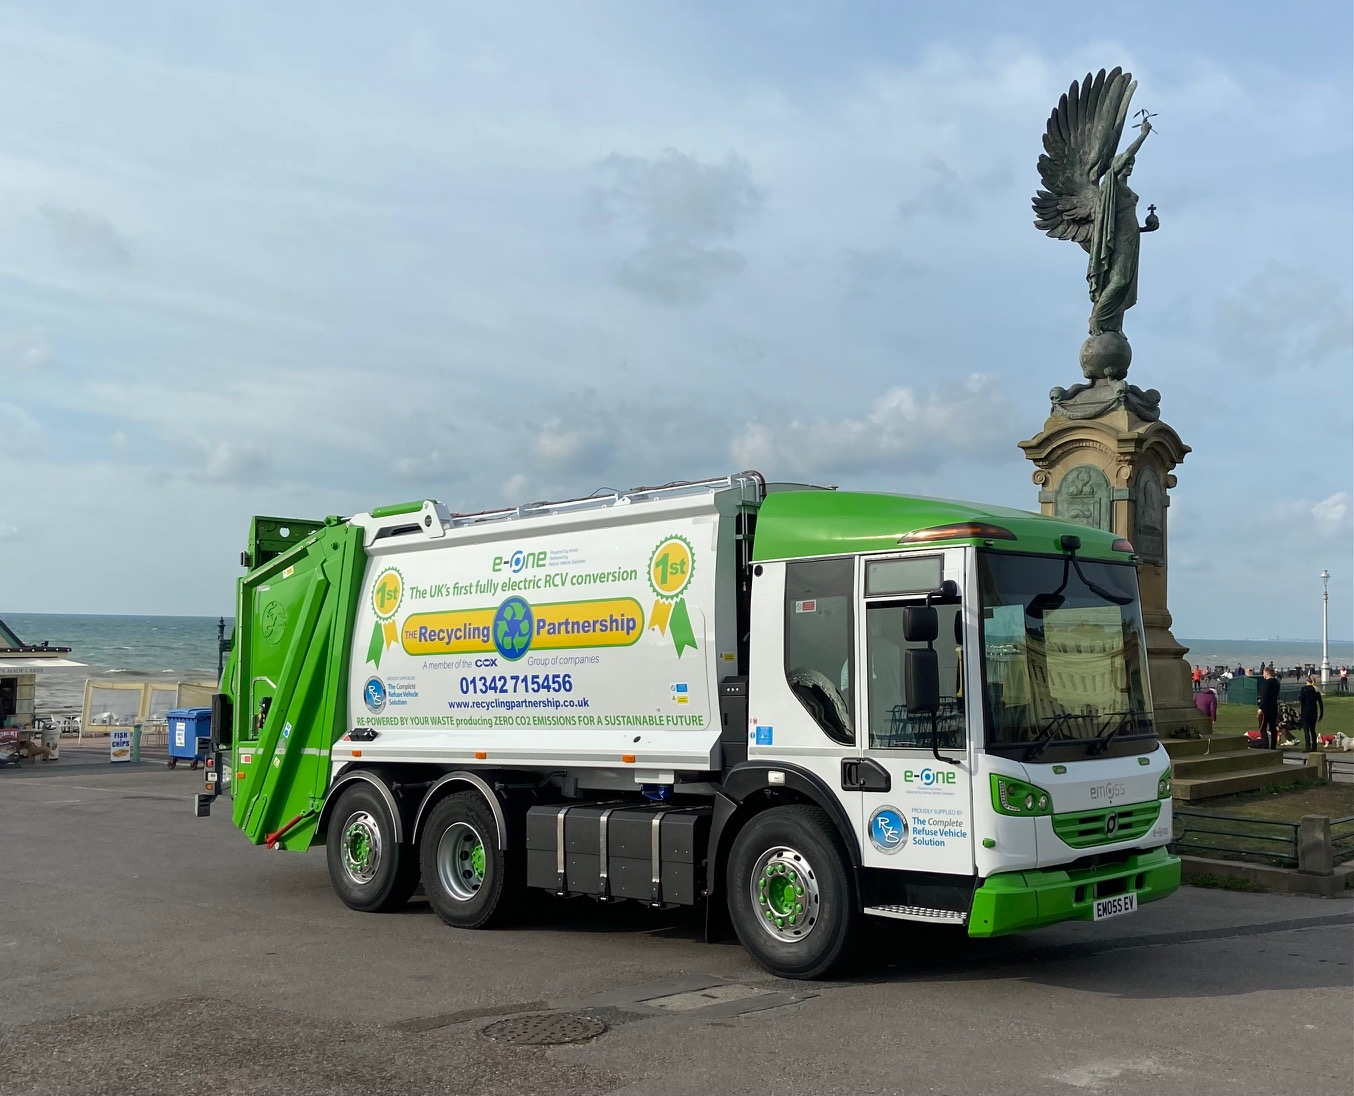 Brighton & Hove residents' recycling to be collected by UK's first complete electric repowered refuse truck